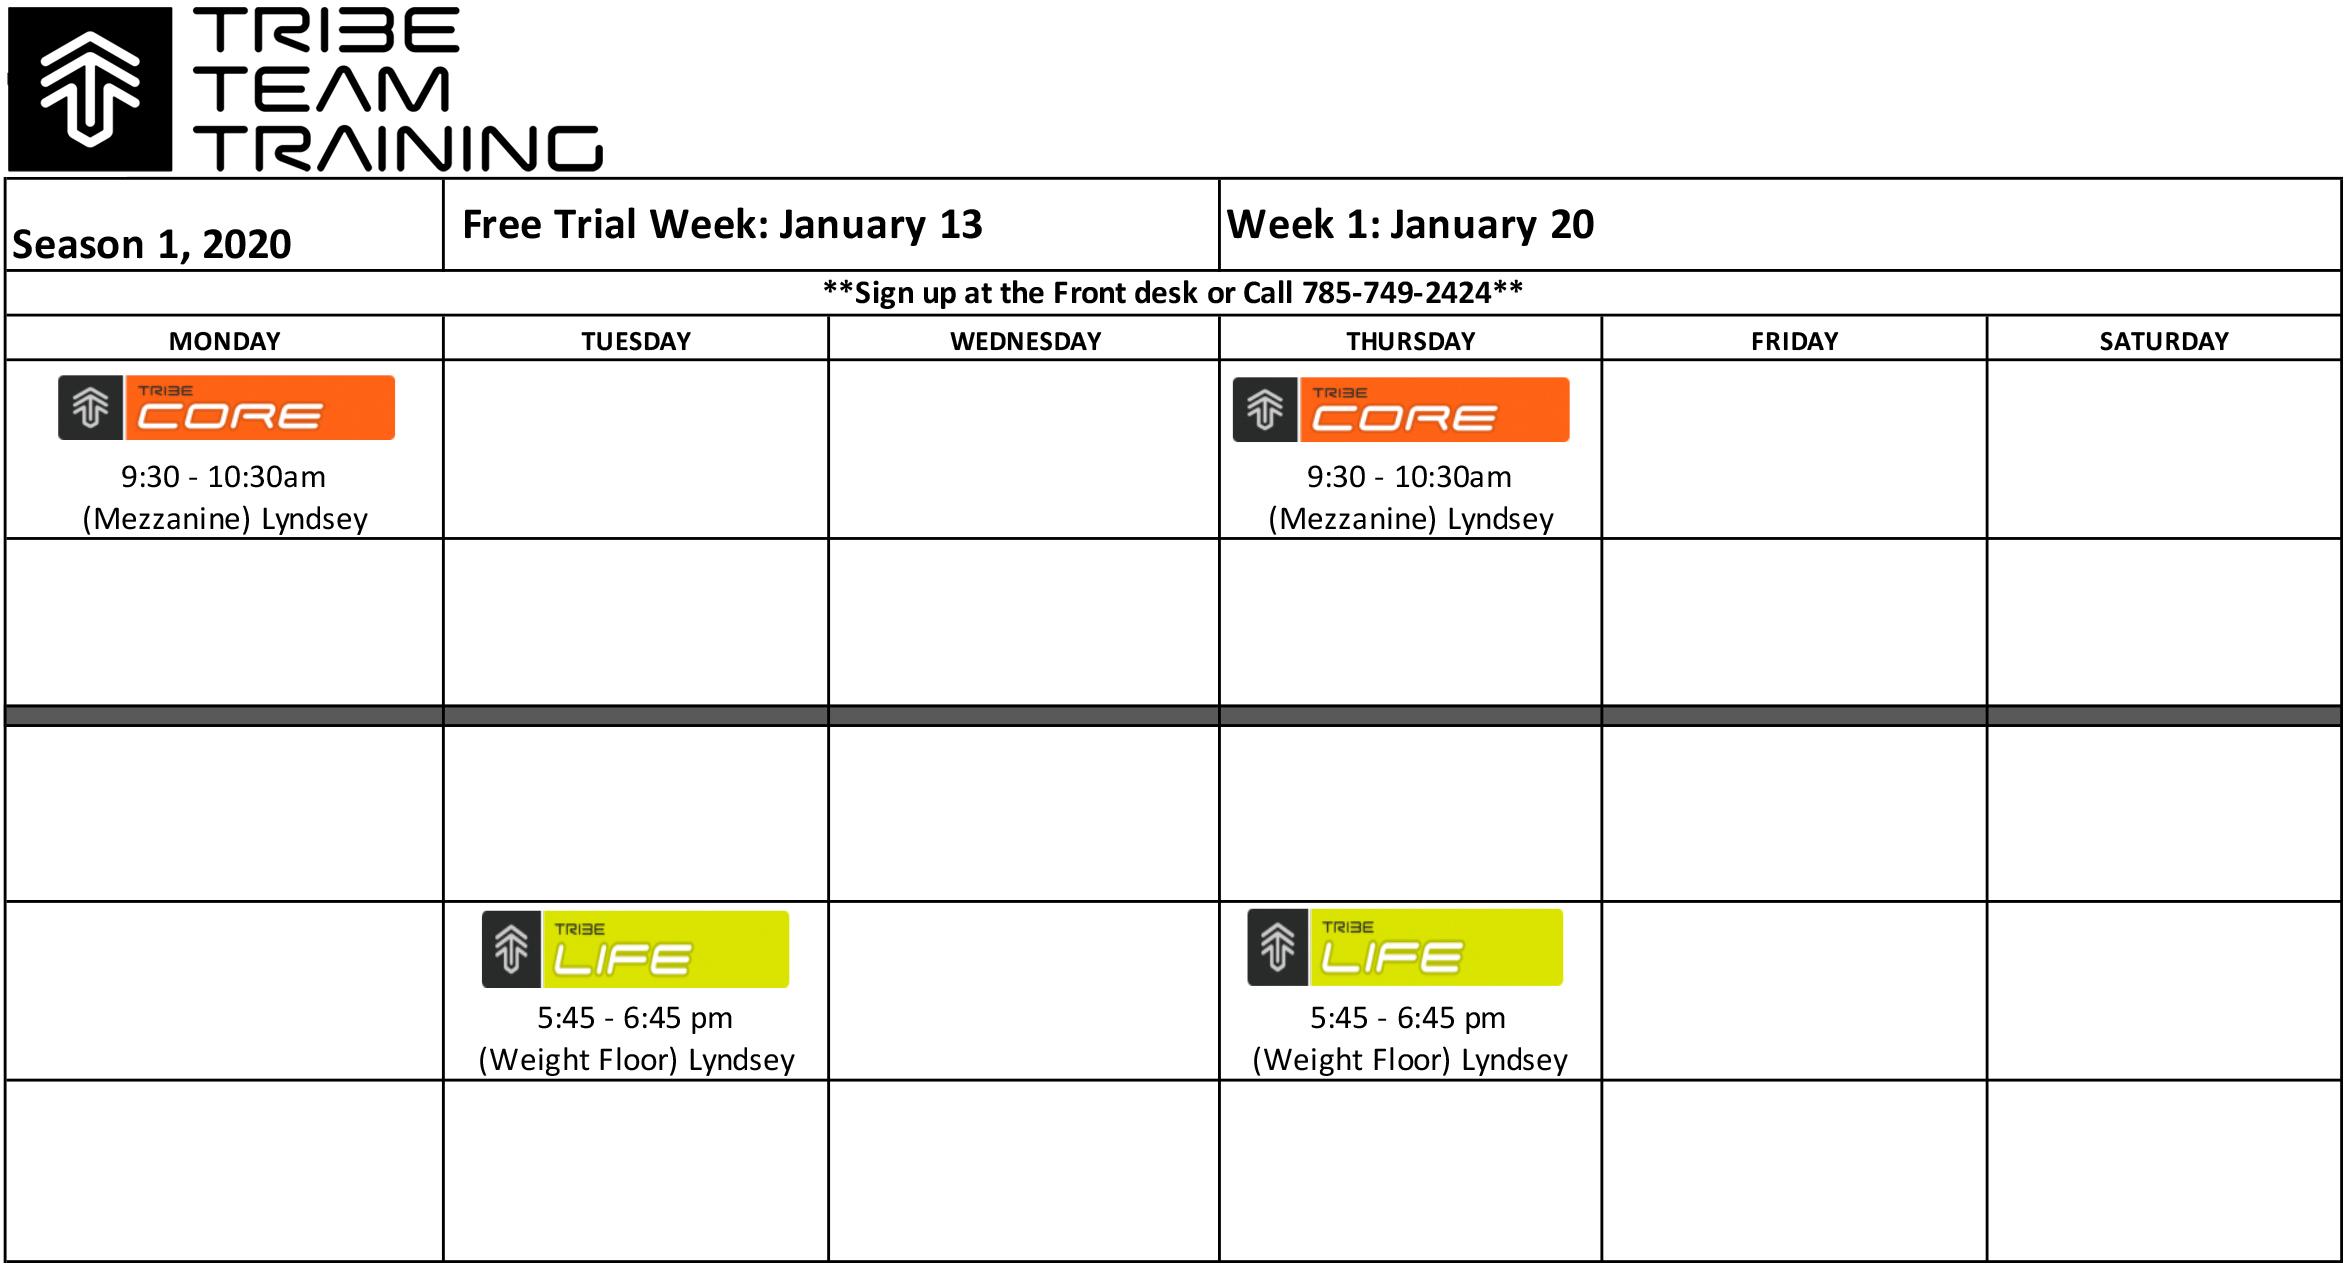 Tribe Team Training Class Schedule for Season One 2020